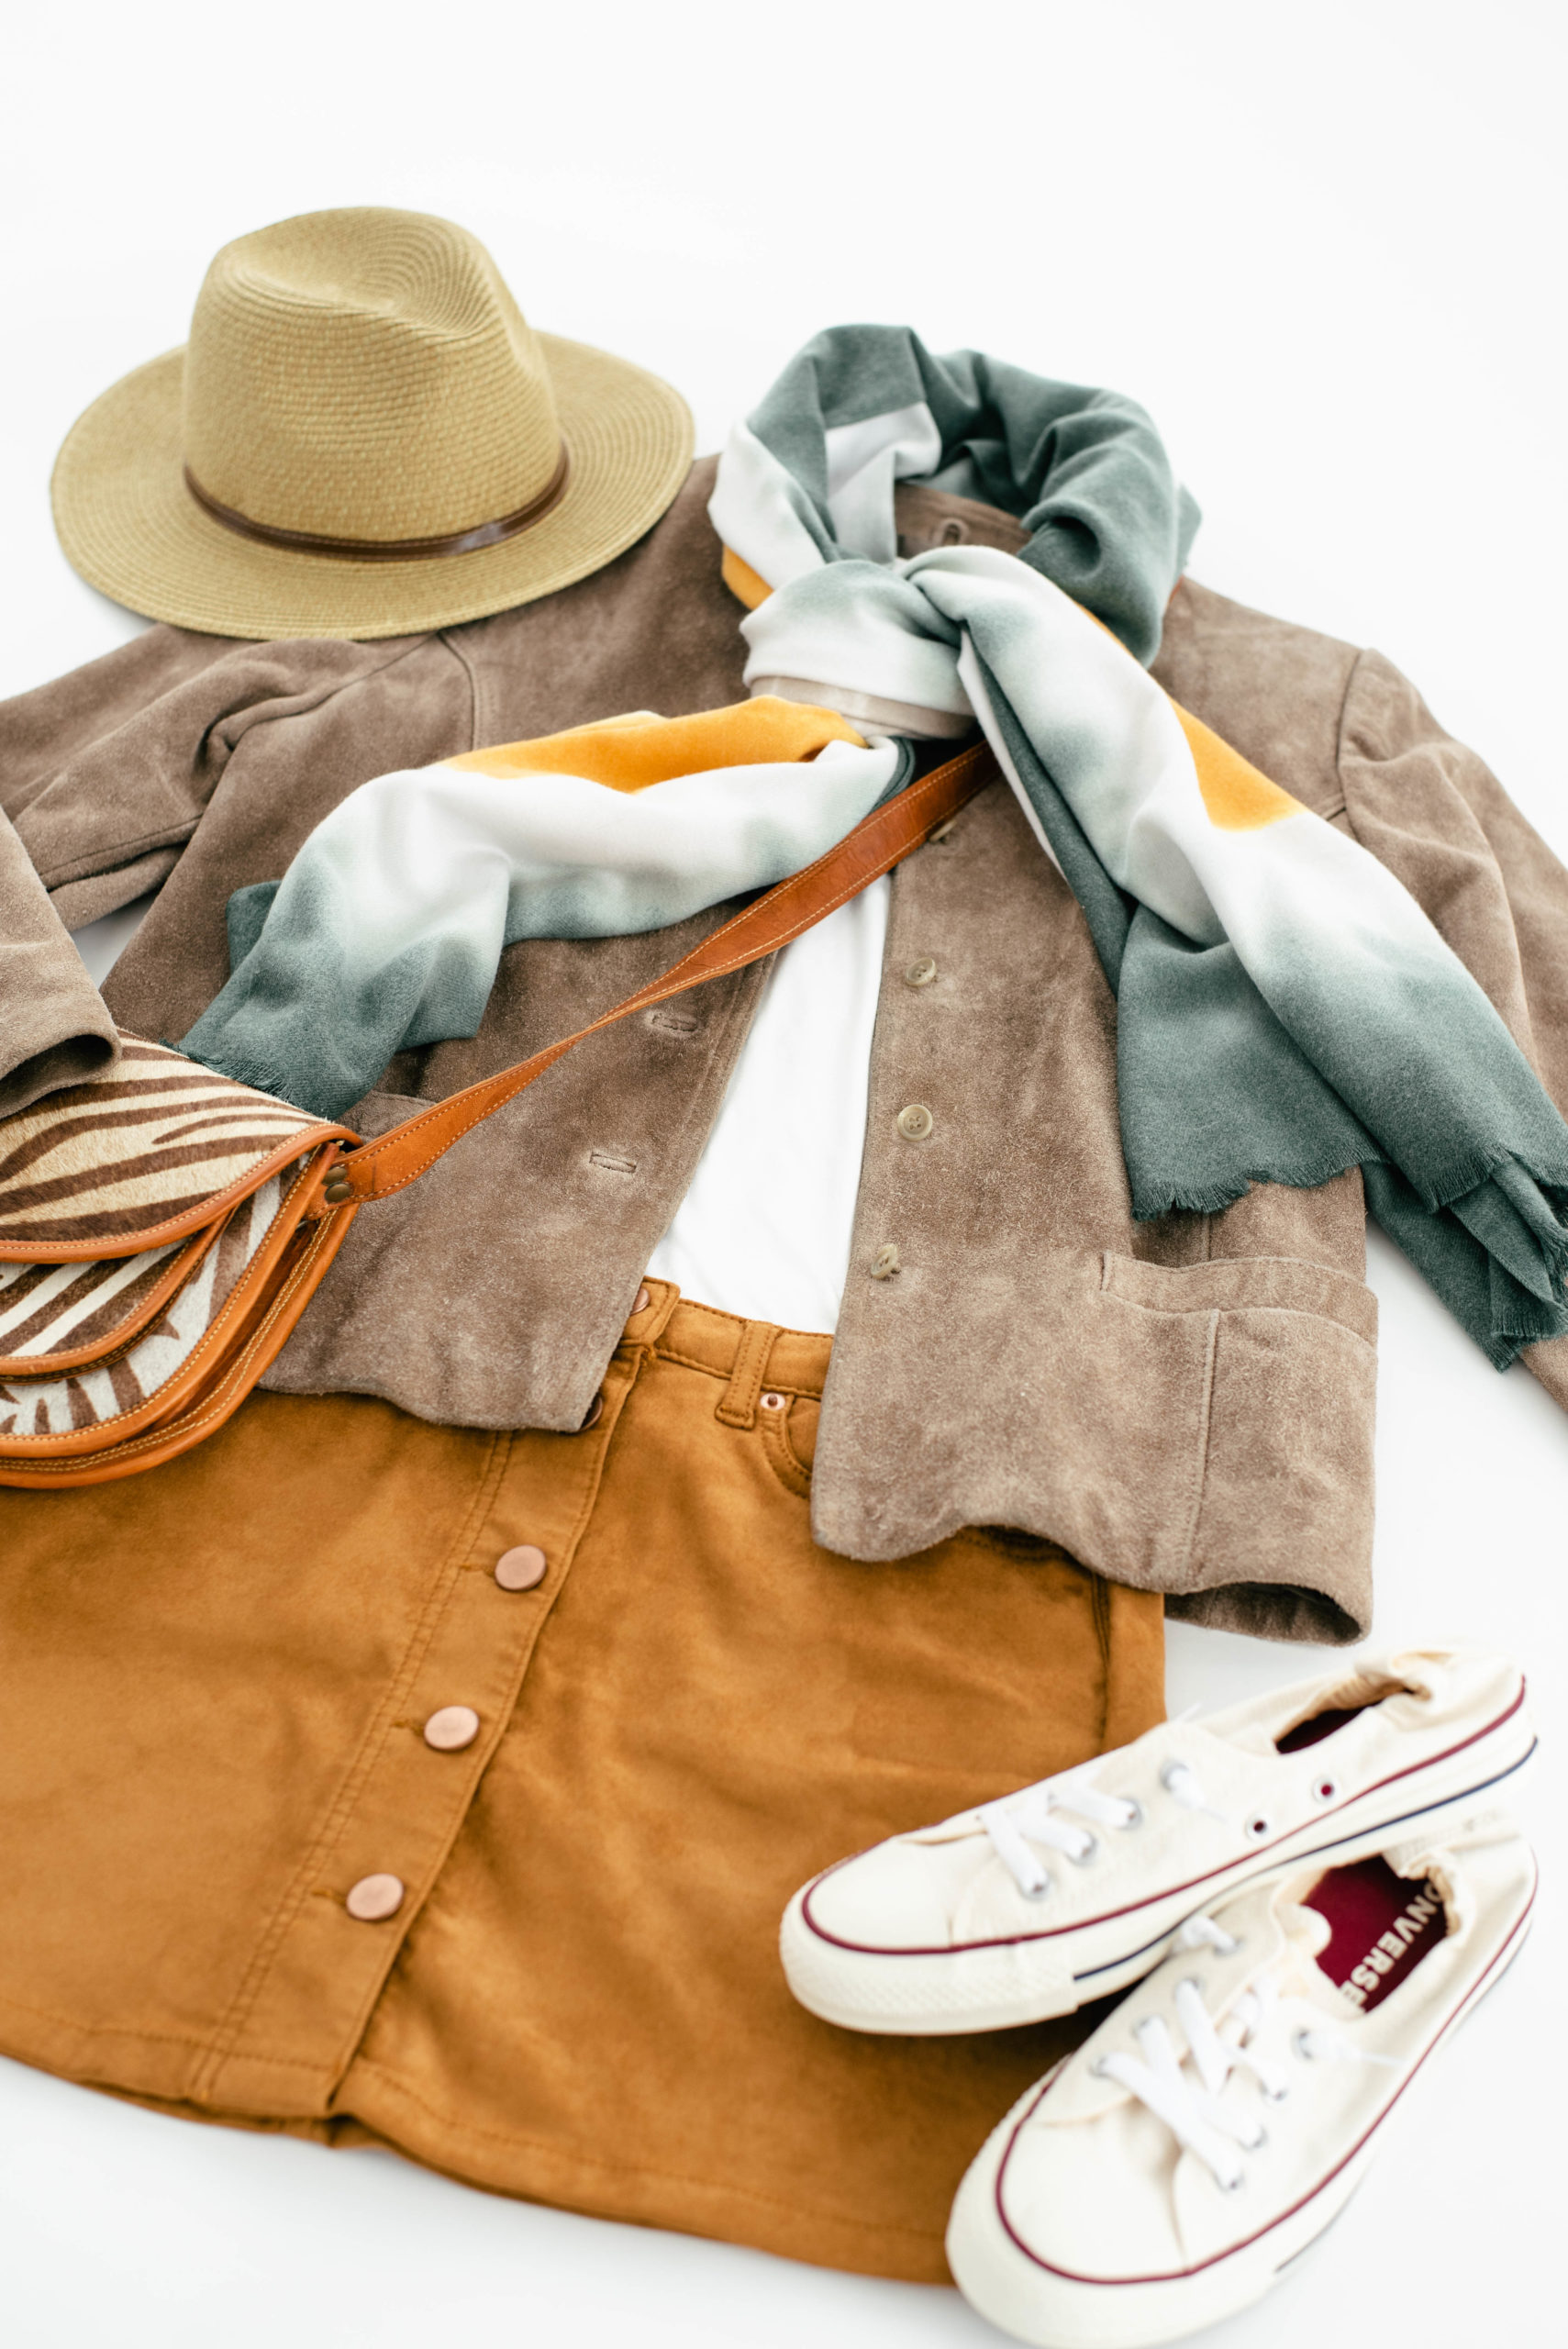 Top 5 Tips for Clothing Flatlay Photography